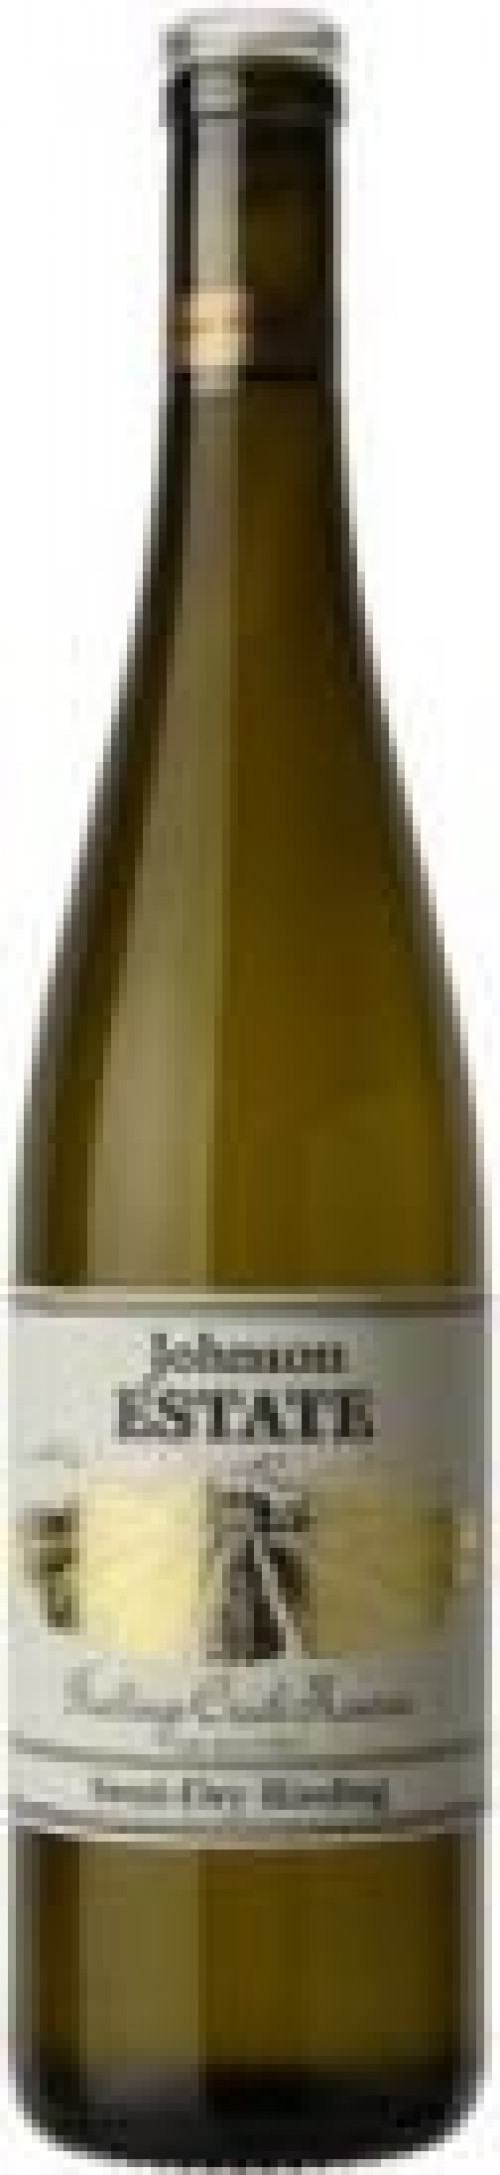 Johnson Semi-Dry Riesling Fcr